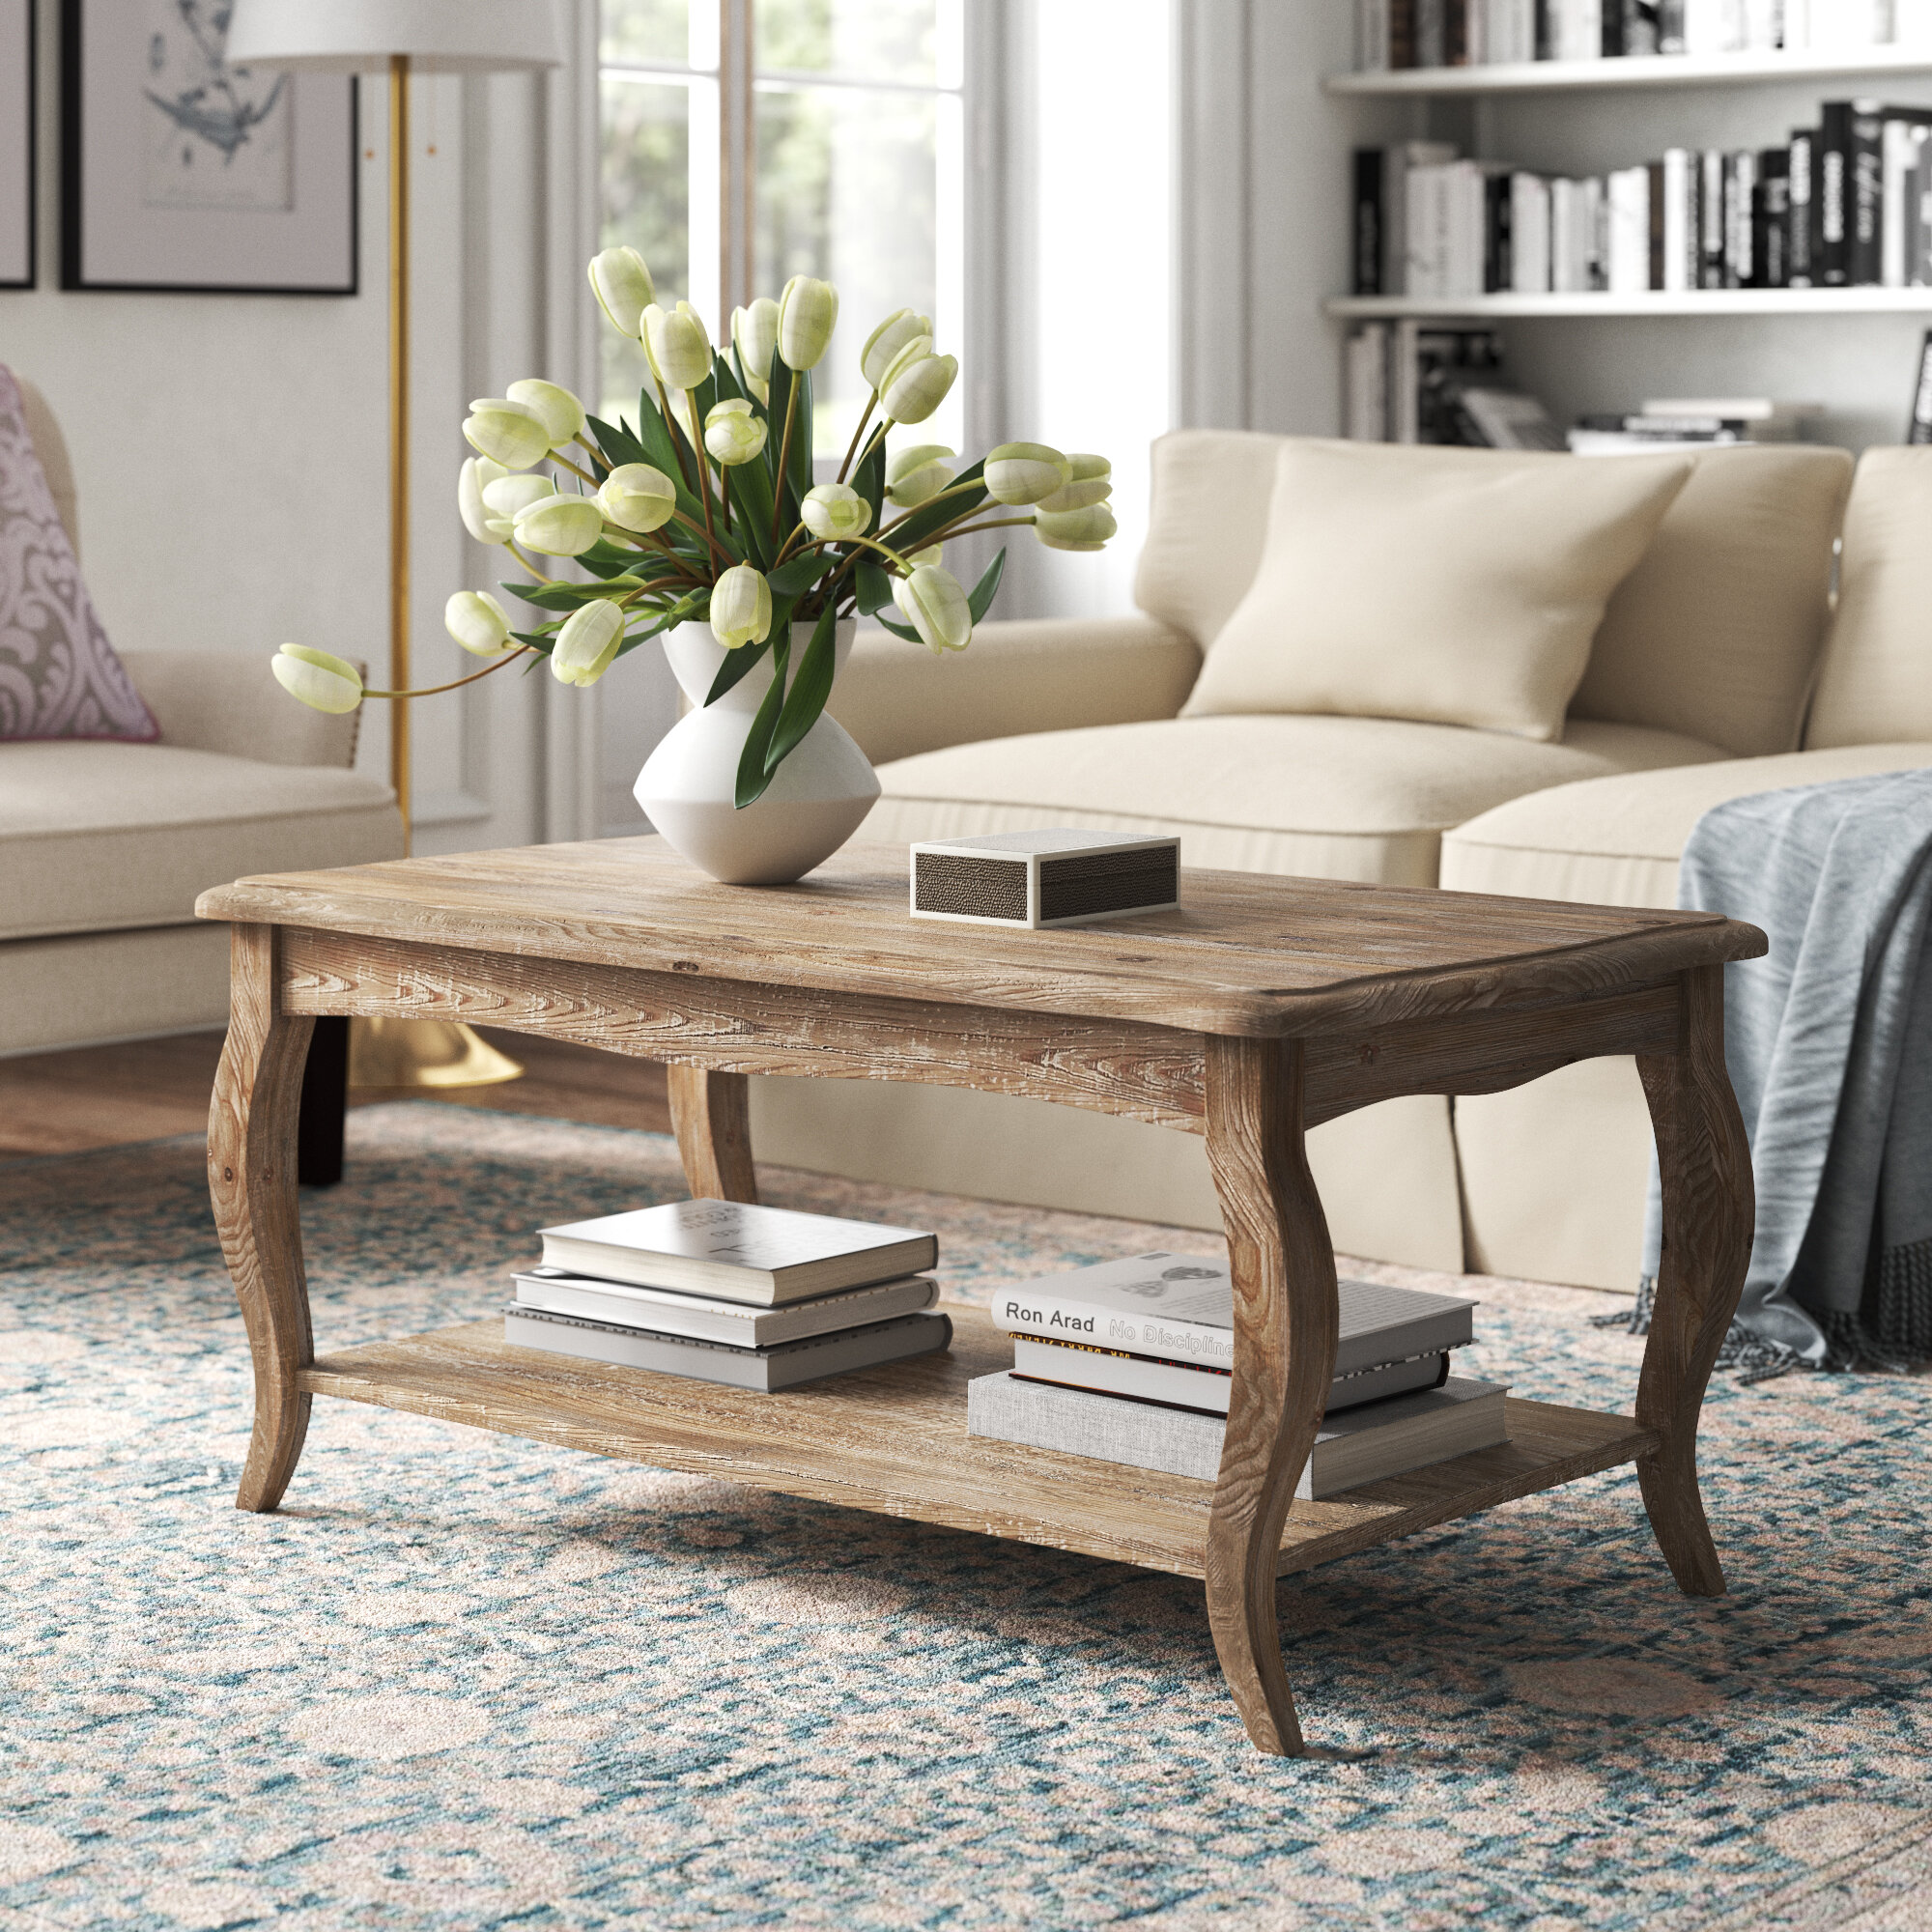 Kelly Clarkson Home Francoise Solid Wood Coffee Table With Storage Reviews Wayfair